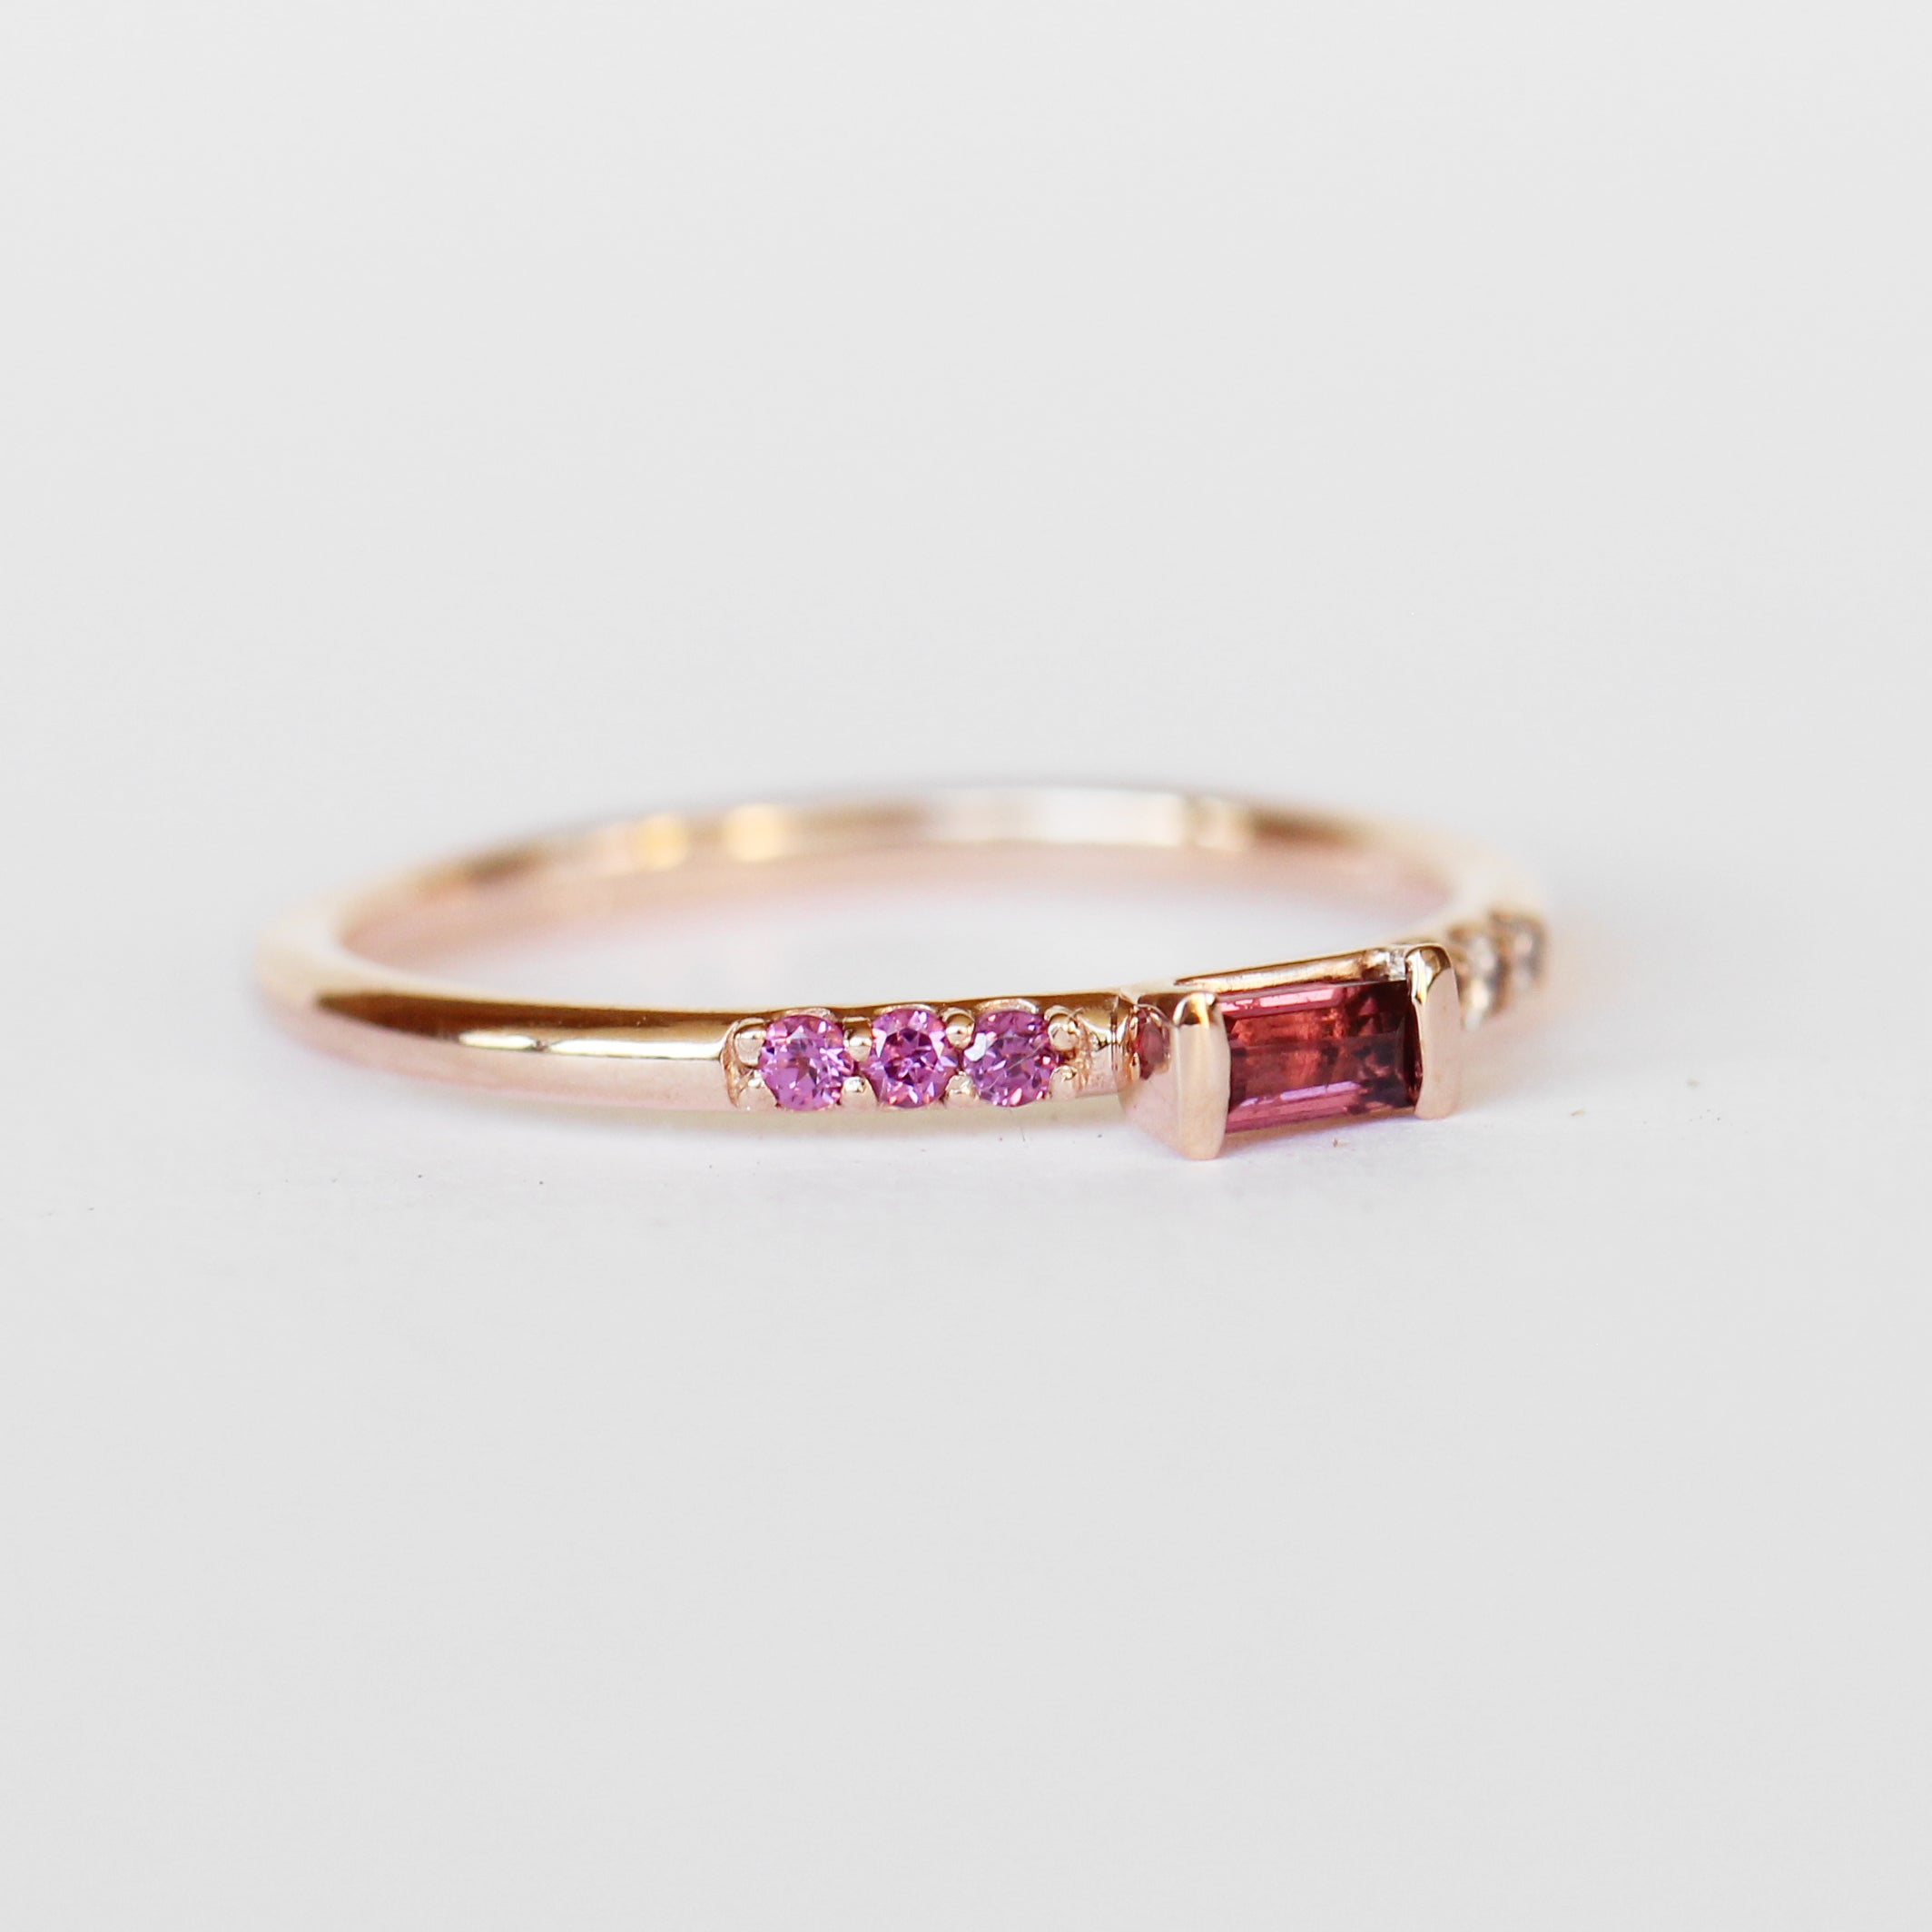 Summer Stacking Ring with Garnet and White Diamonds in 10k Rose Gold - Ready to Size and Ship - Celestial Diamonds ® by Midwinter Co.